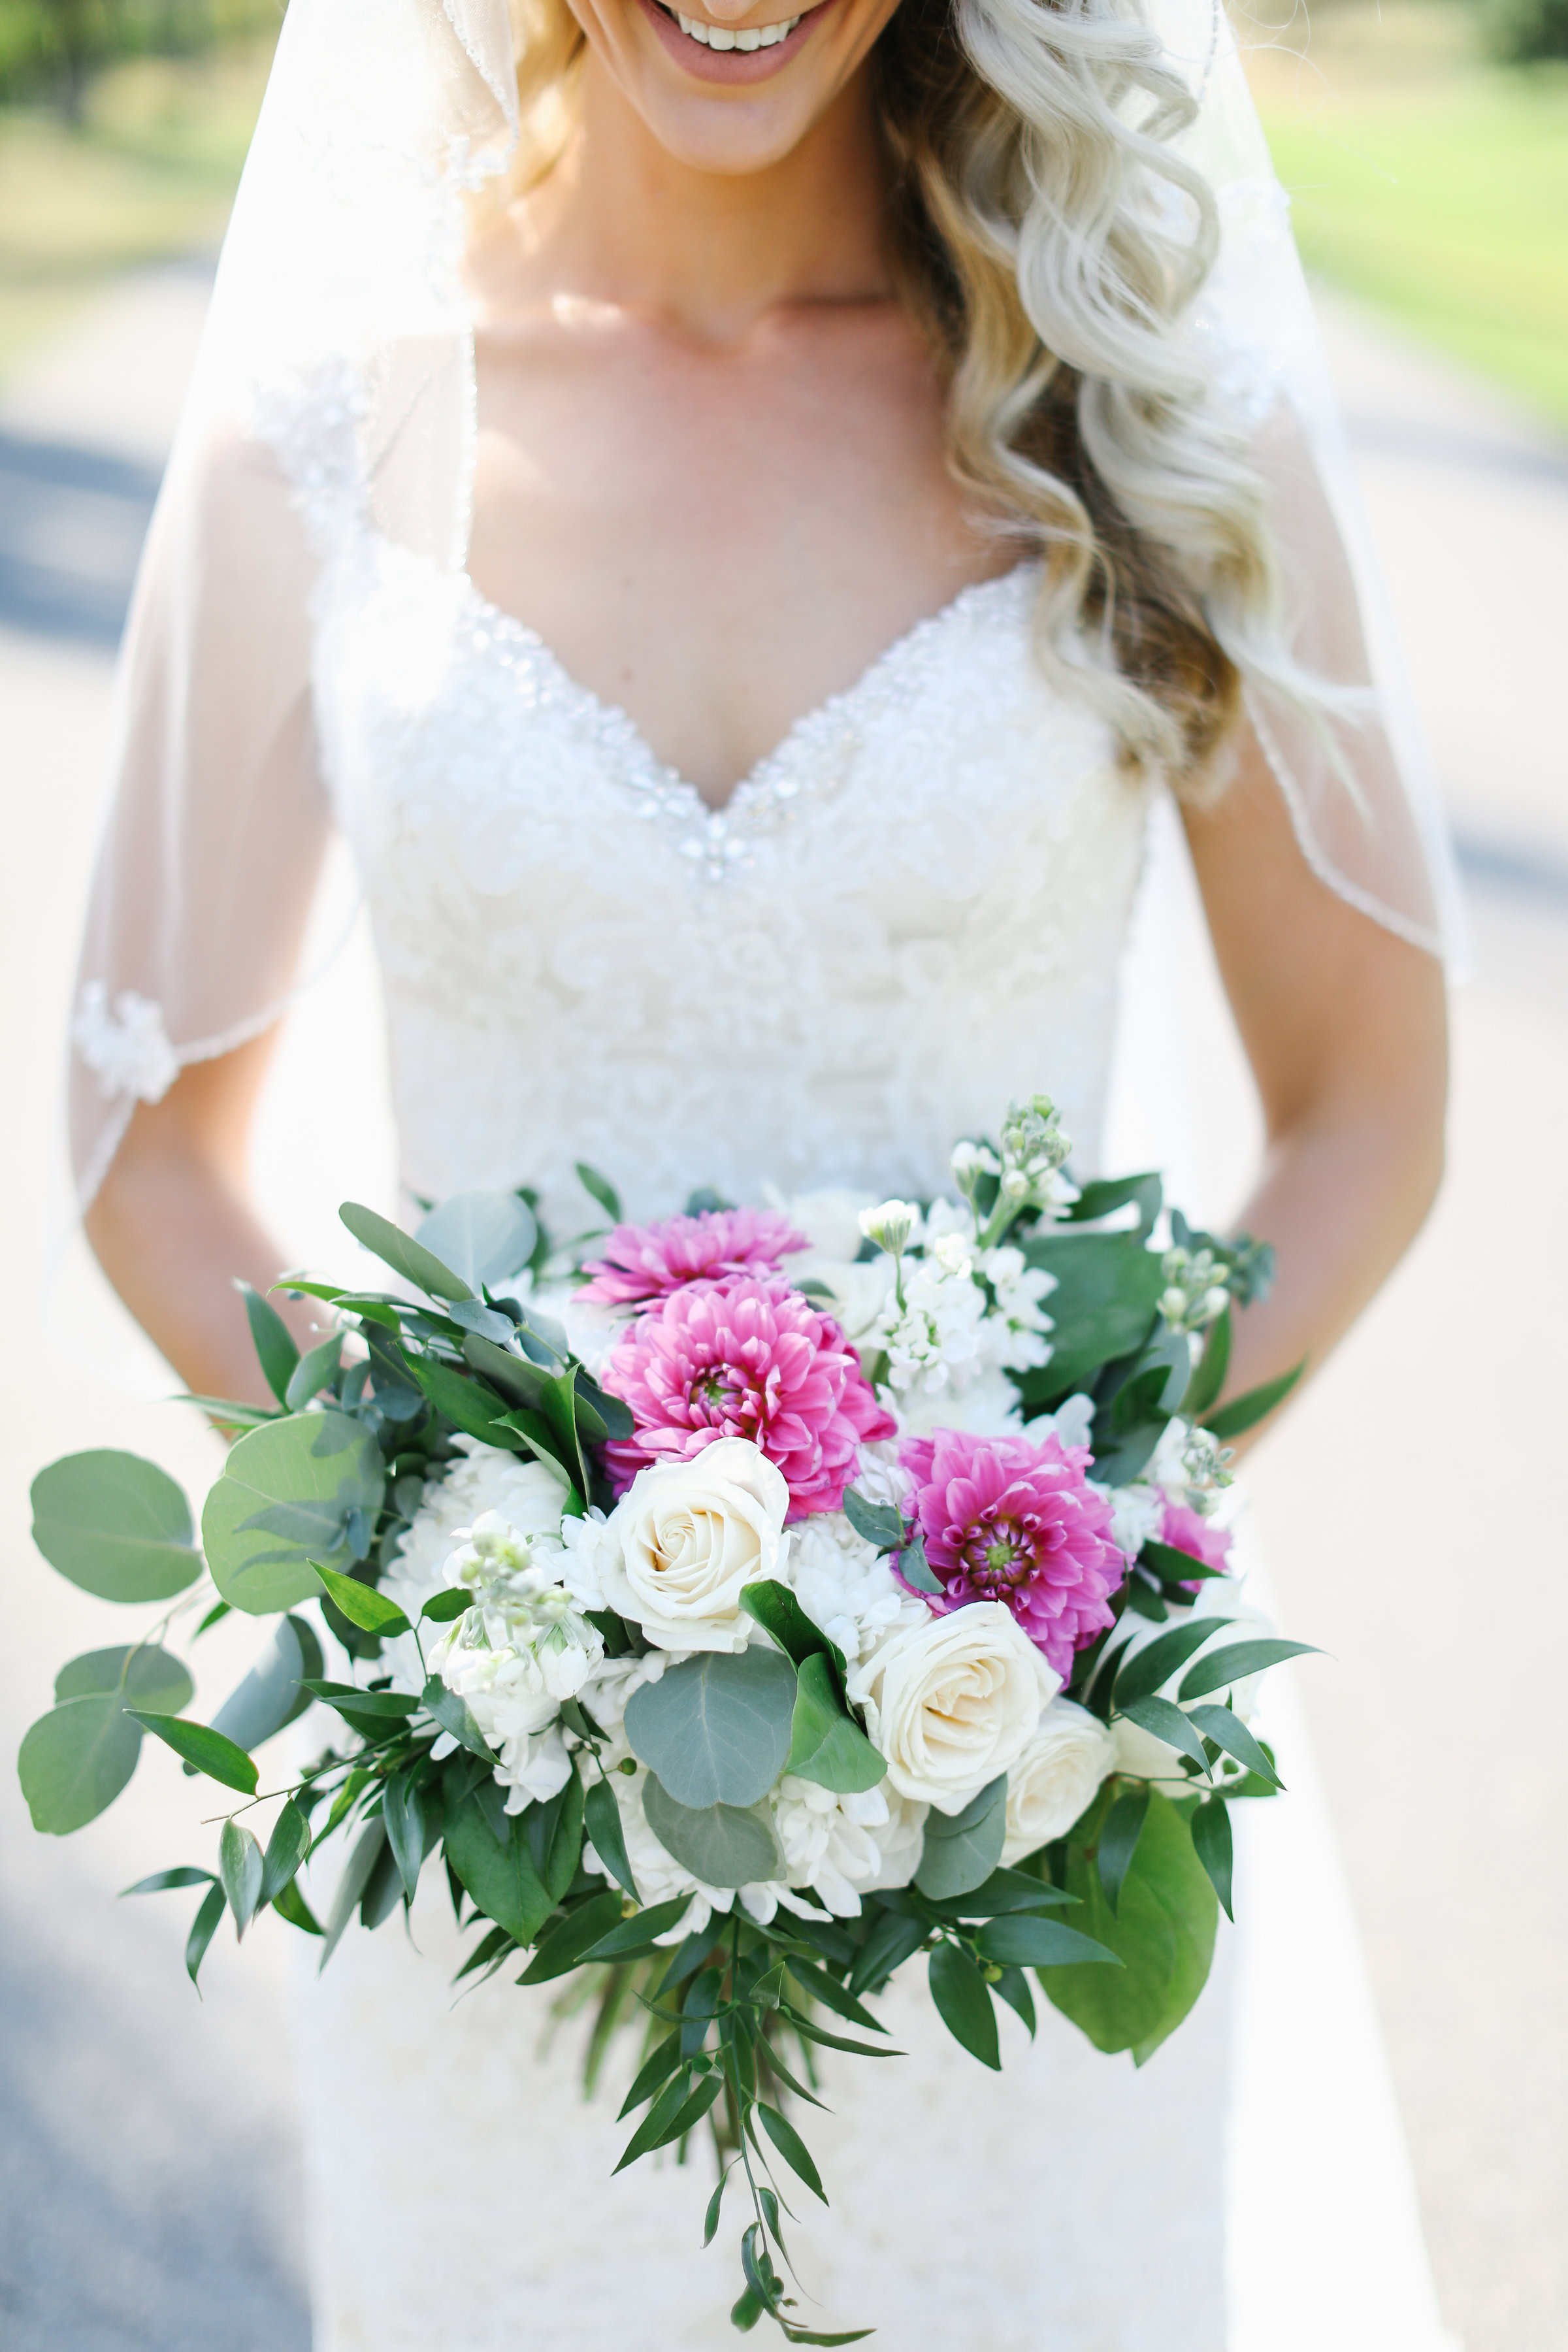 wedding bouquet in calgary, alberta that is affordable